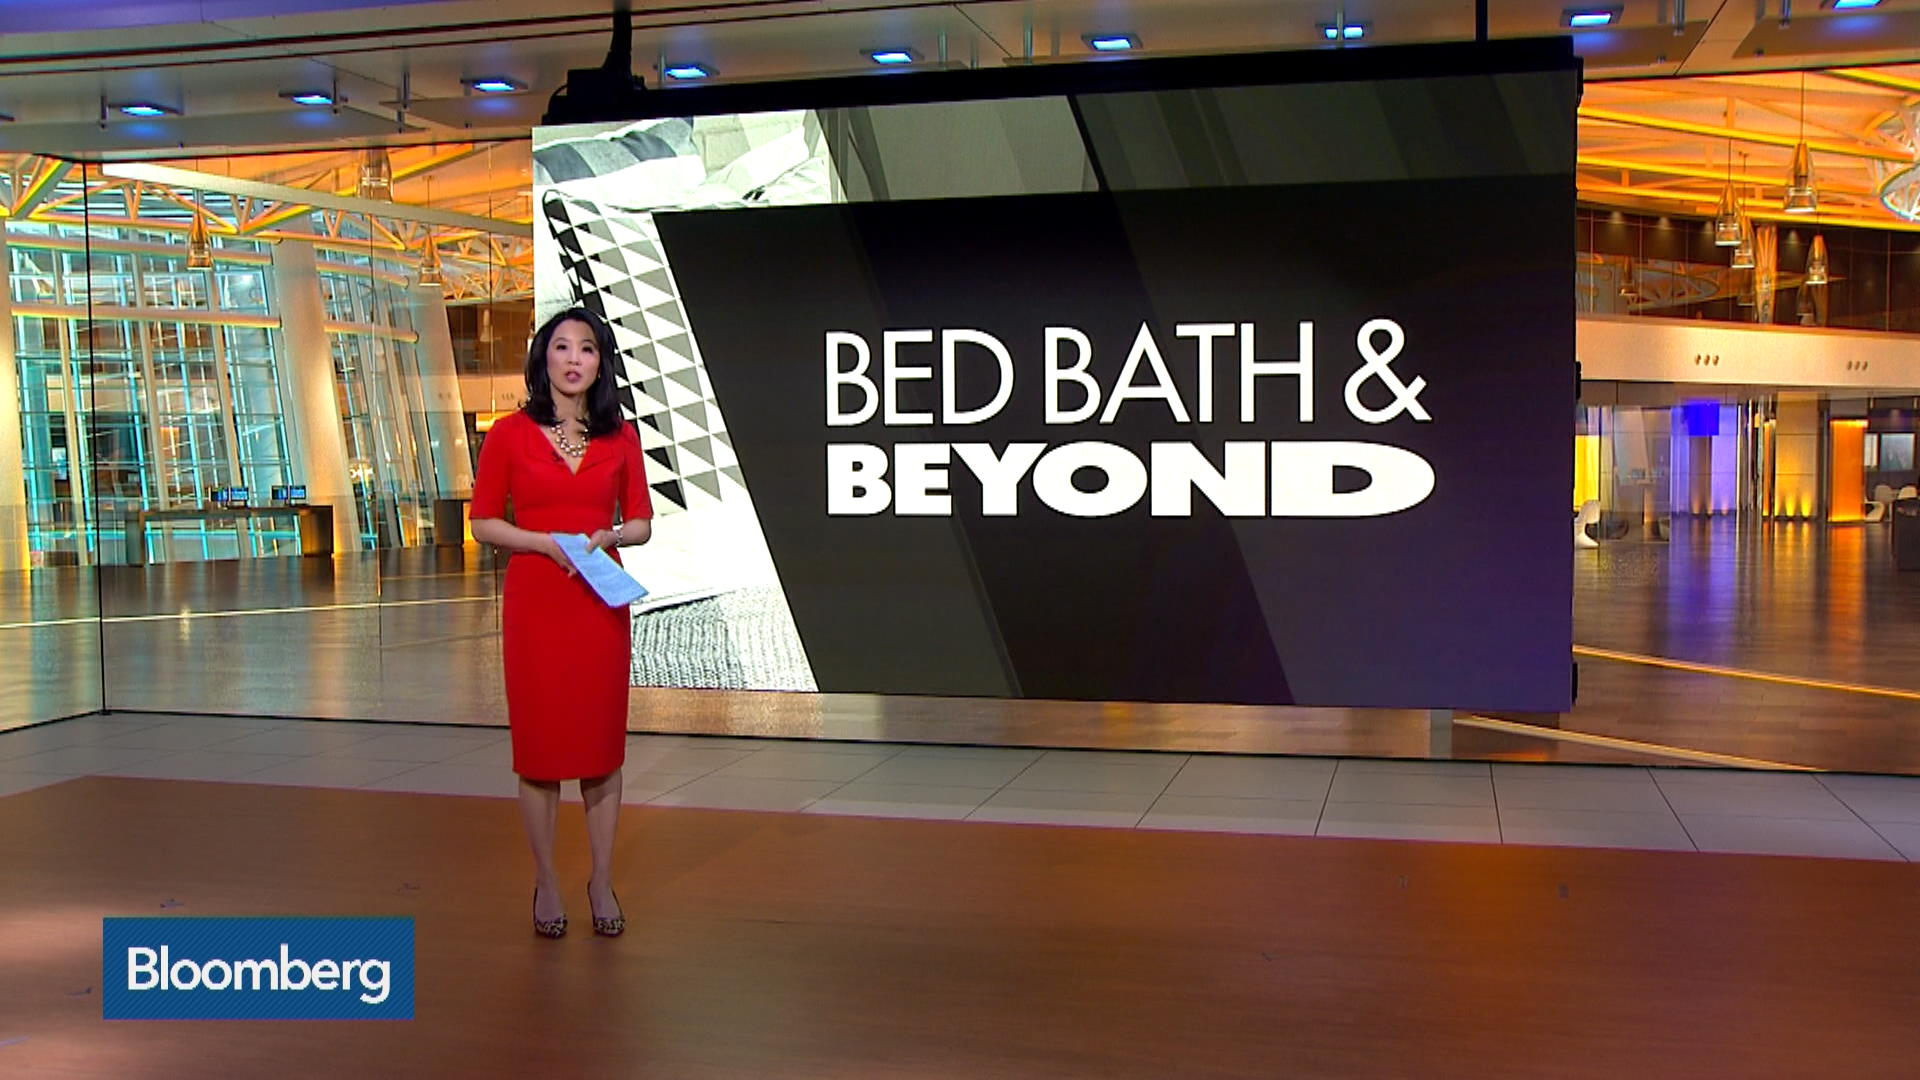 bed bath beyond capital structure decision Free essays on bed bath beyond the capital structure decision for students use our papers to help you with yours 1 - 30.